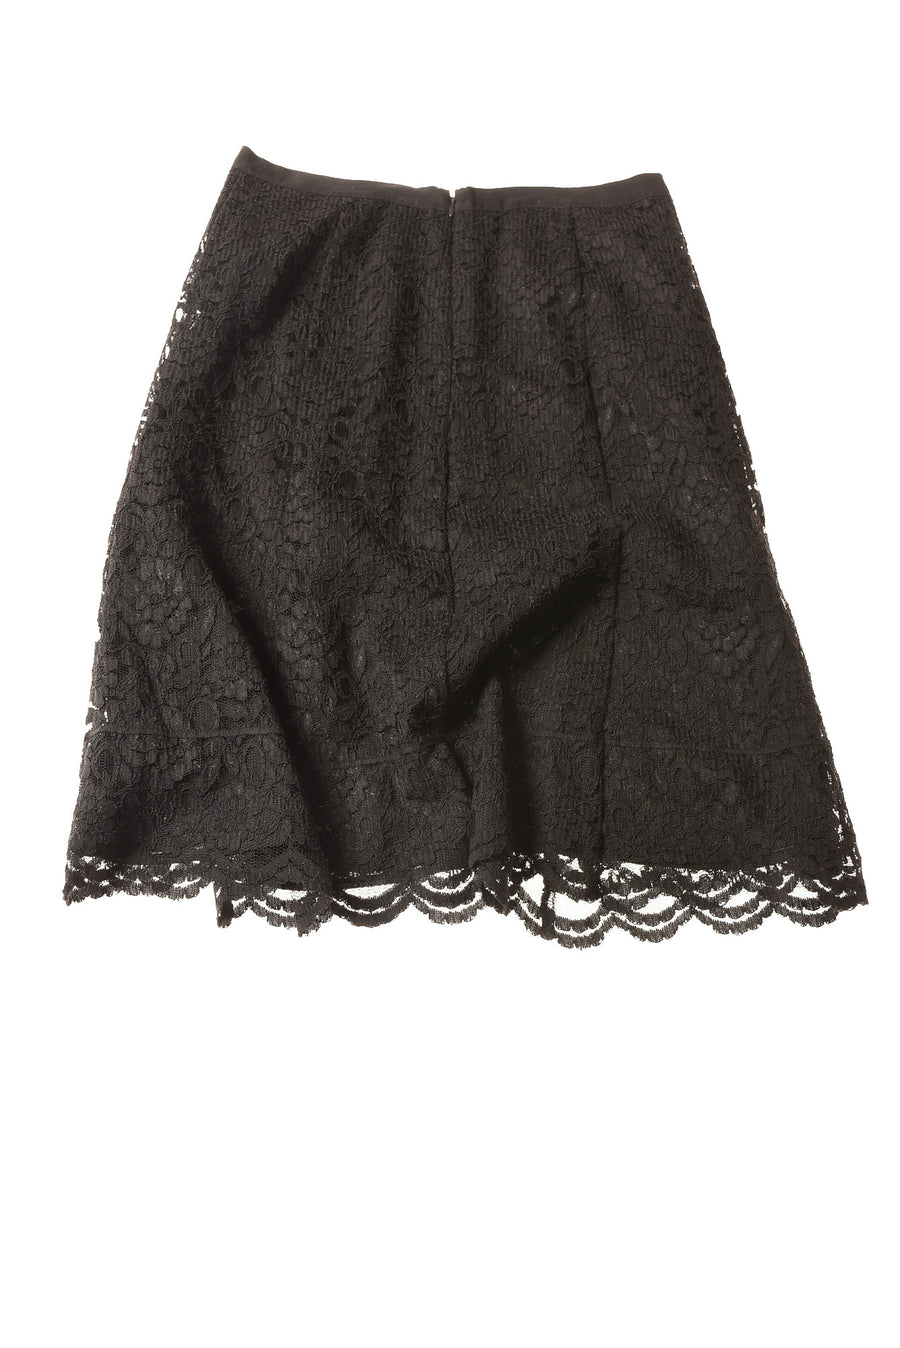 USED Old Navy Women's Skirt 8 Black